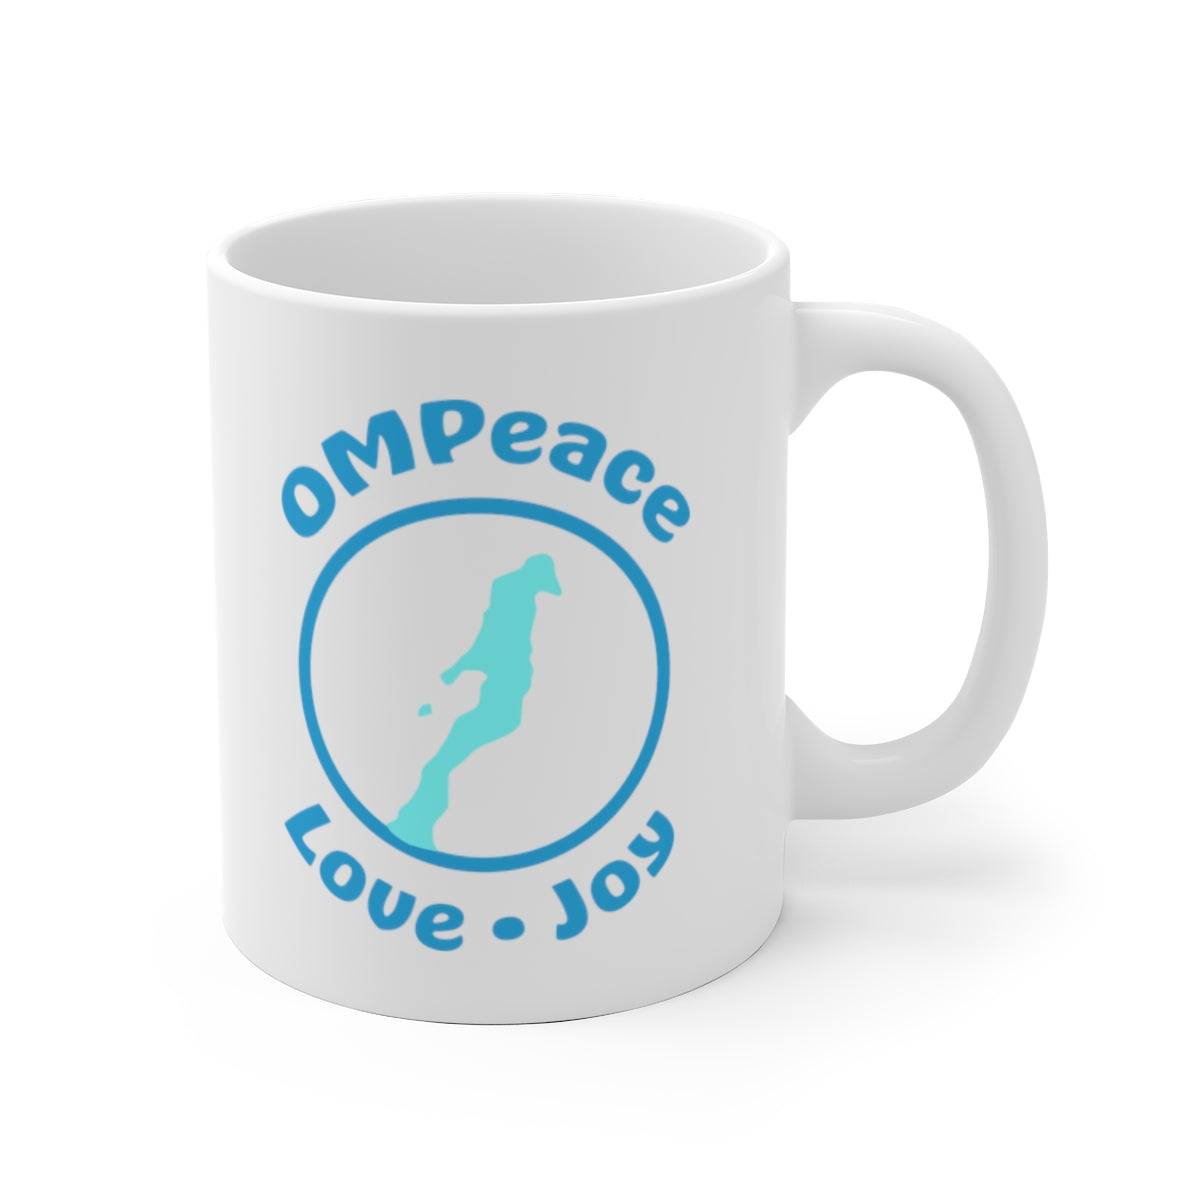 OMPeace White Ceramic Mug